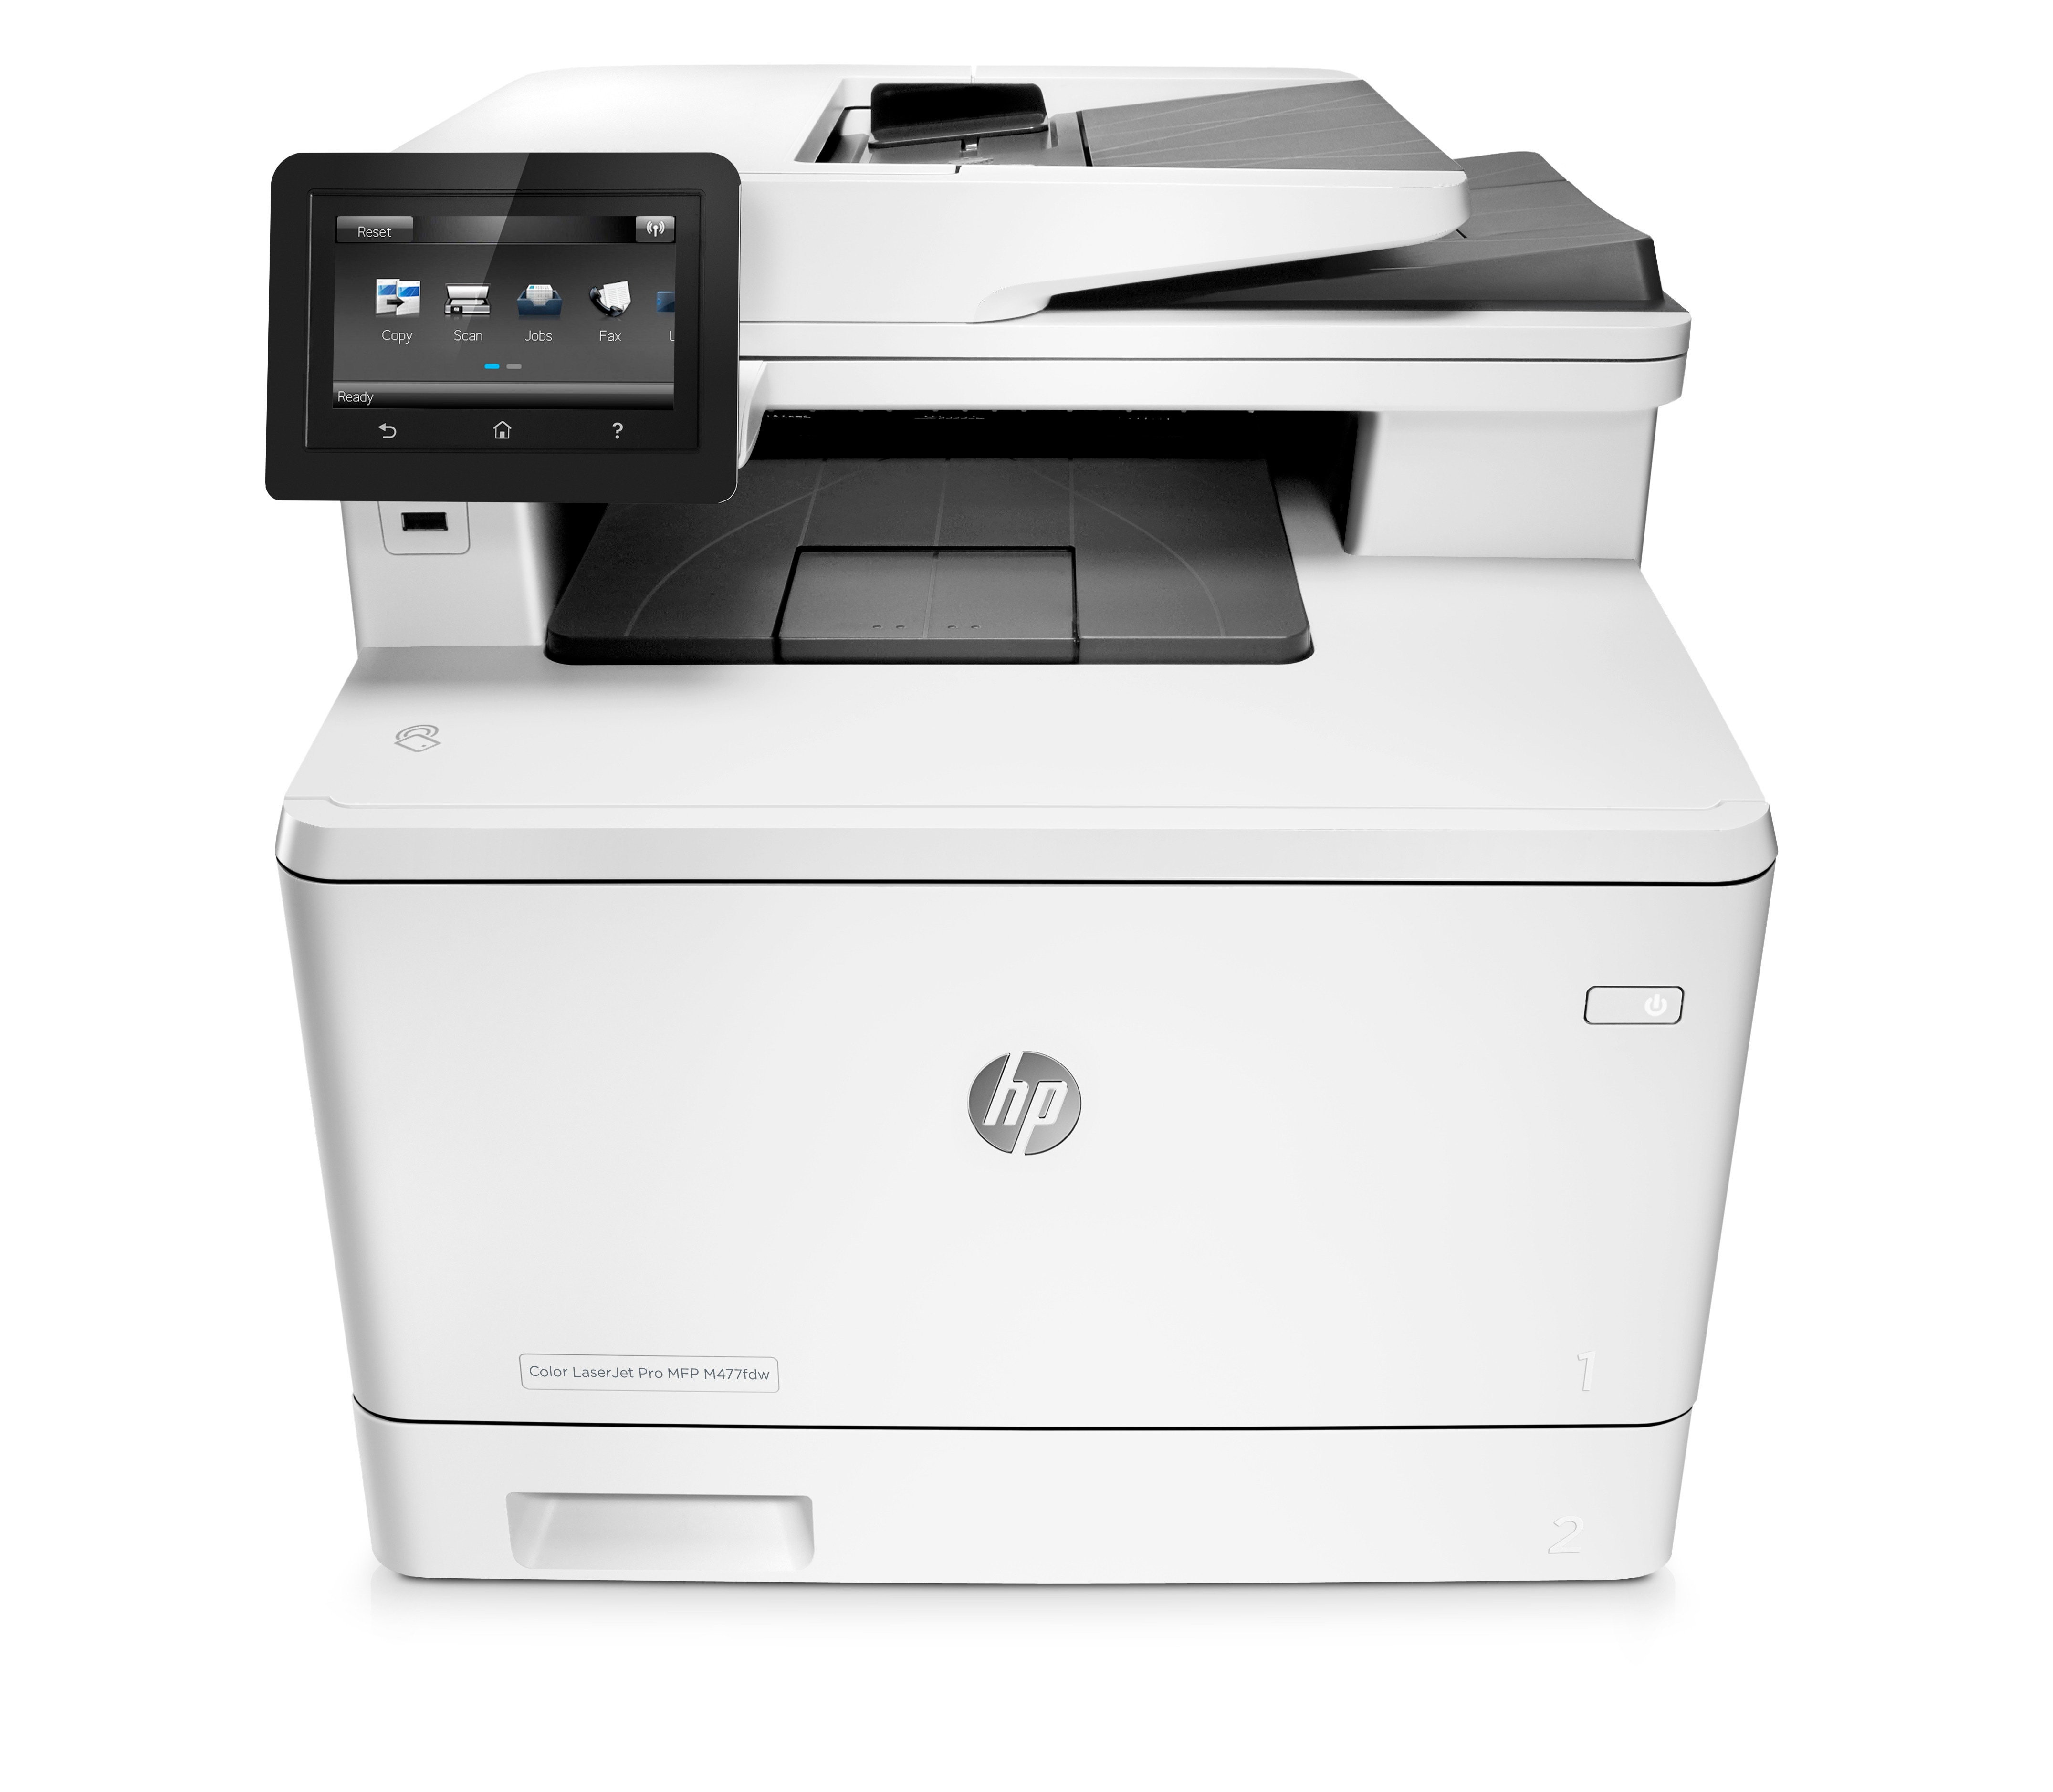 CF379A HP Color LaserJet Pro M477fdw Printer - Refurbished